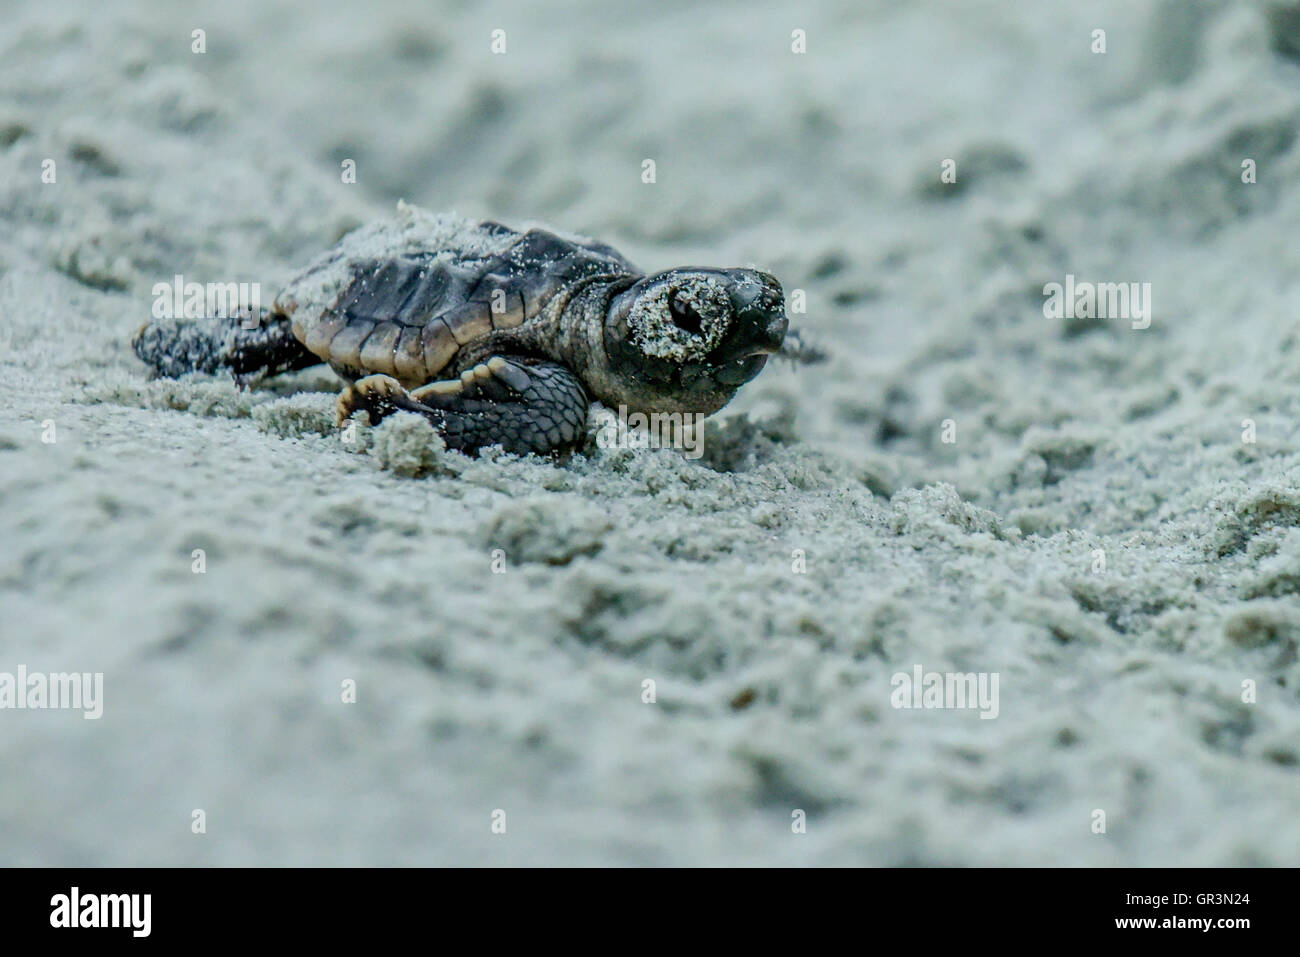 Baby Loggerhead turtle hatching - Caretta caretta | North Carolina - Sunset Beach | Endangered young turtles climb - Stock Image